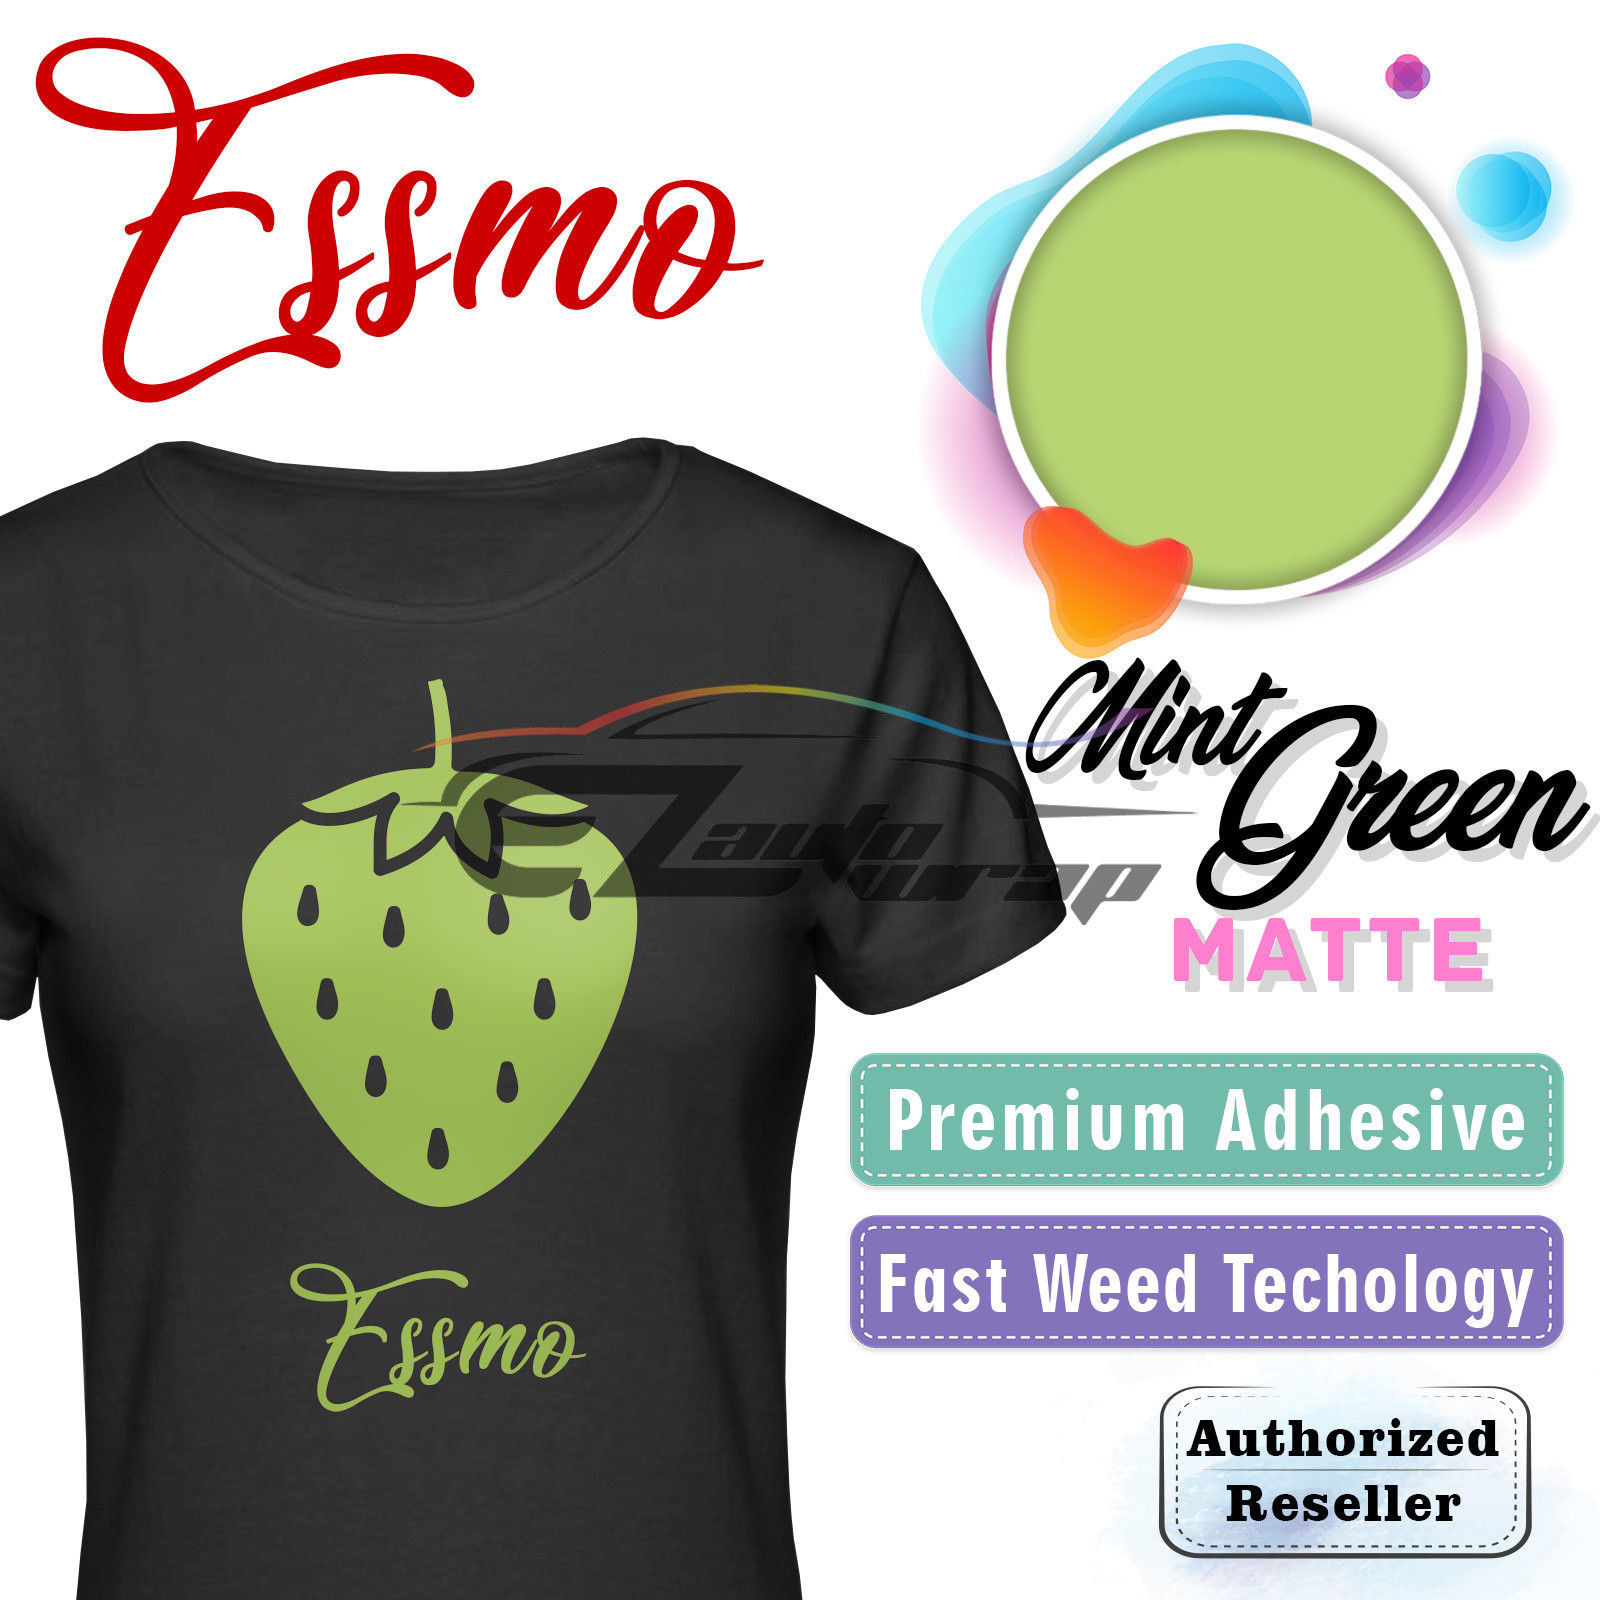 Essmo Mint Green Matte Solid Heat Transfer Vinyl Htv Sheet